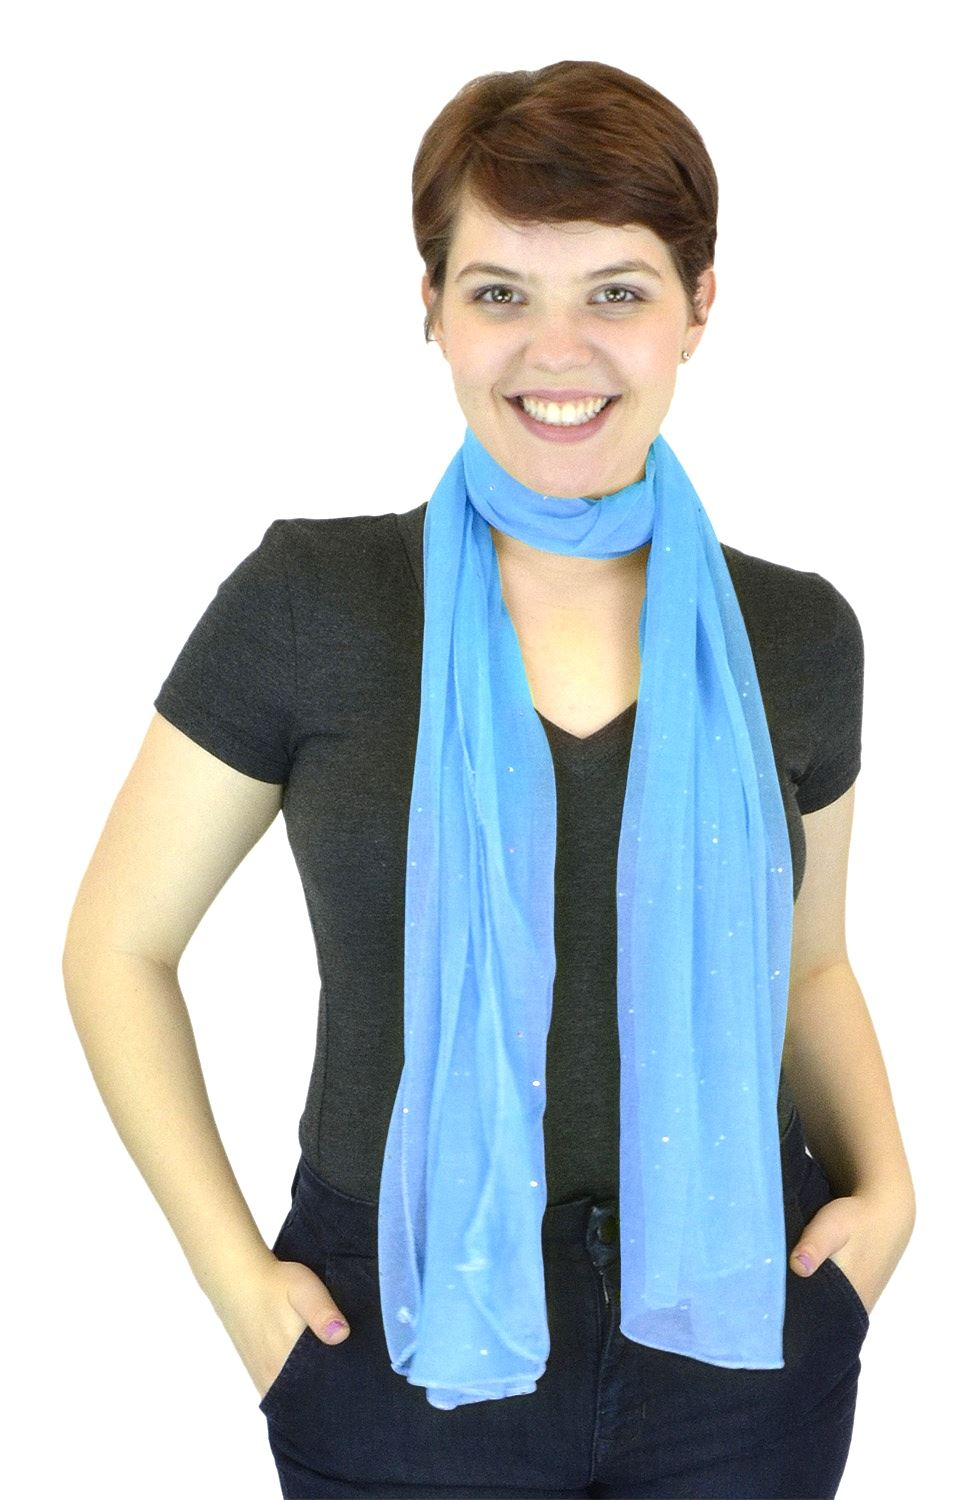 Belle Donne - Women's Solid Color Sheer Polyester Scarf Casual Formal - Baby Blue